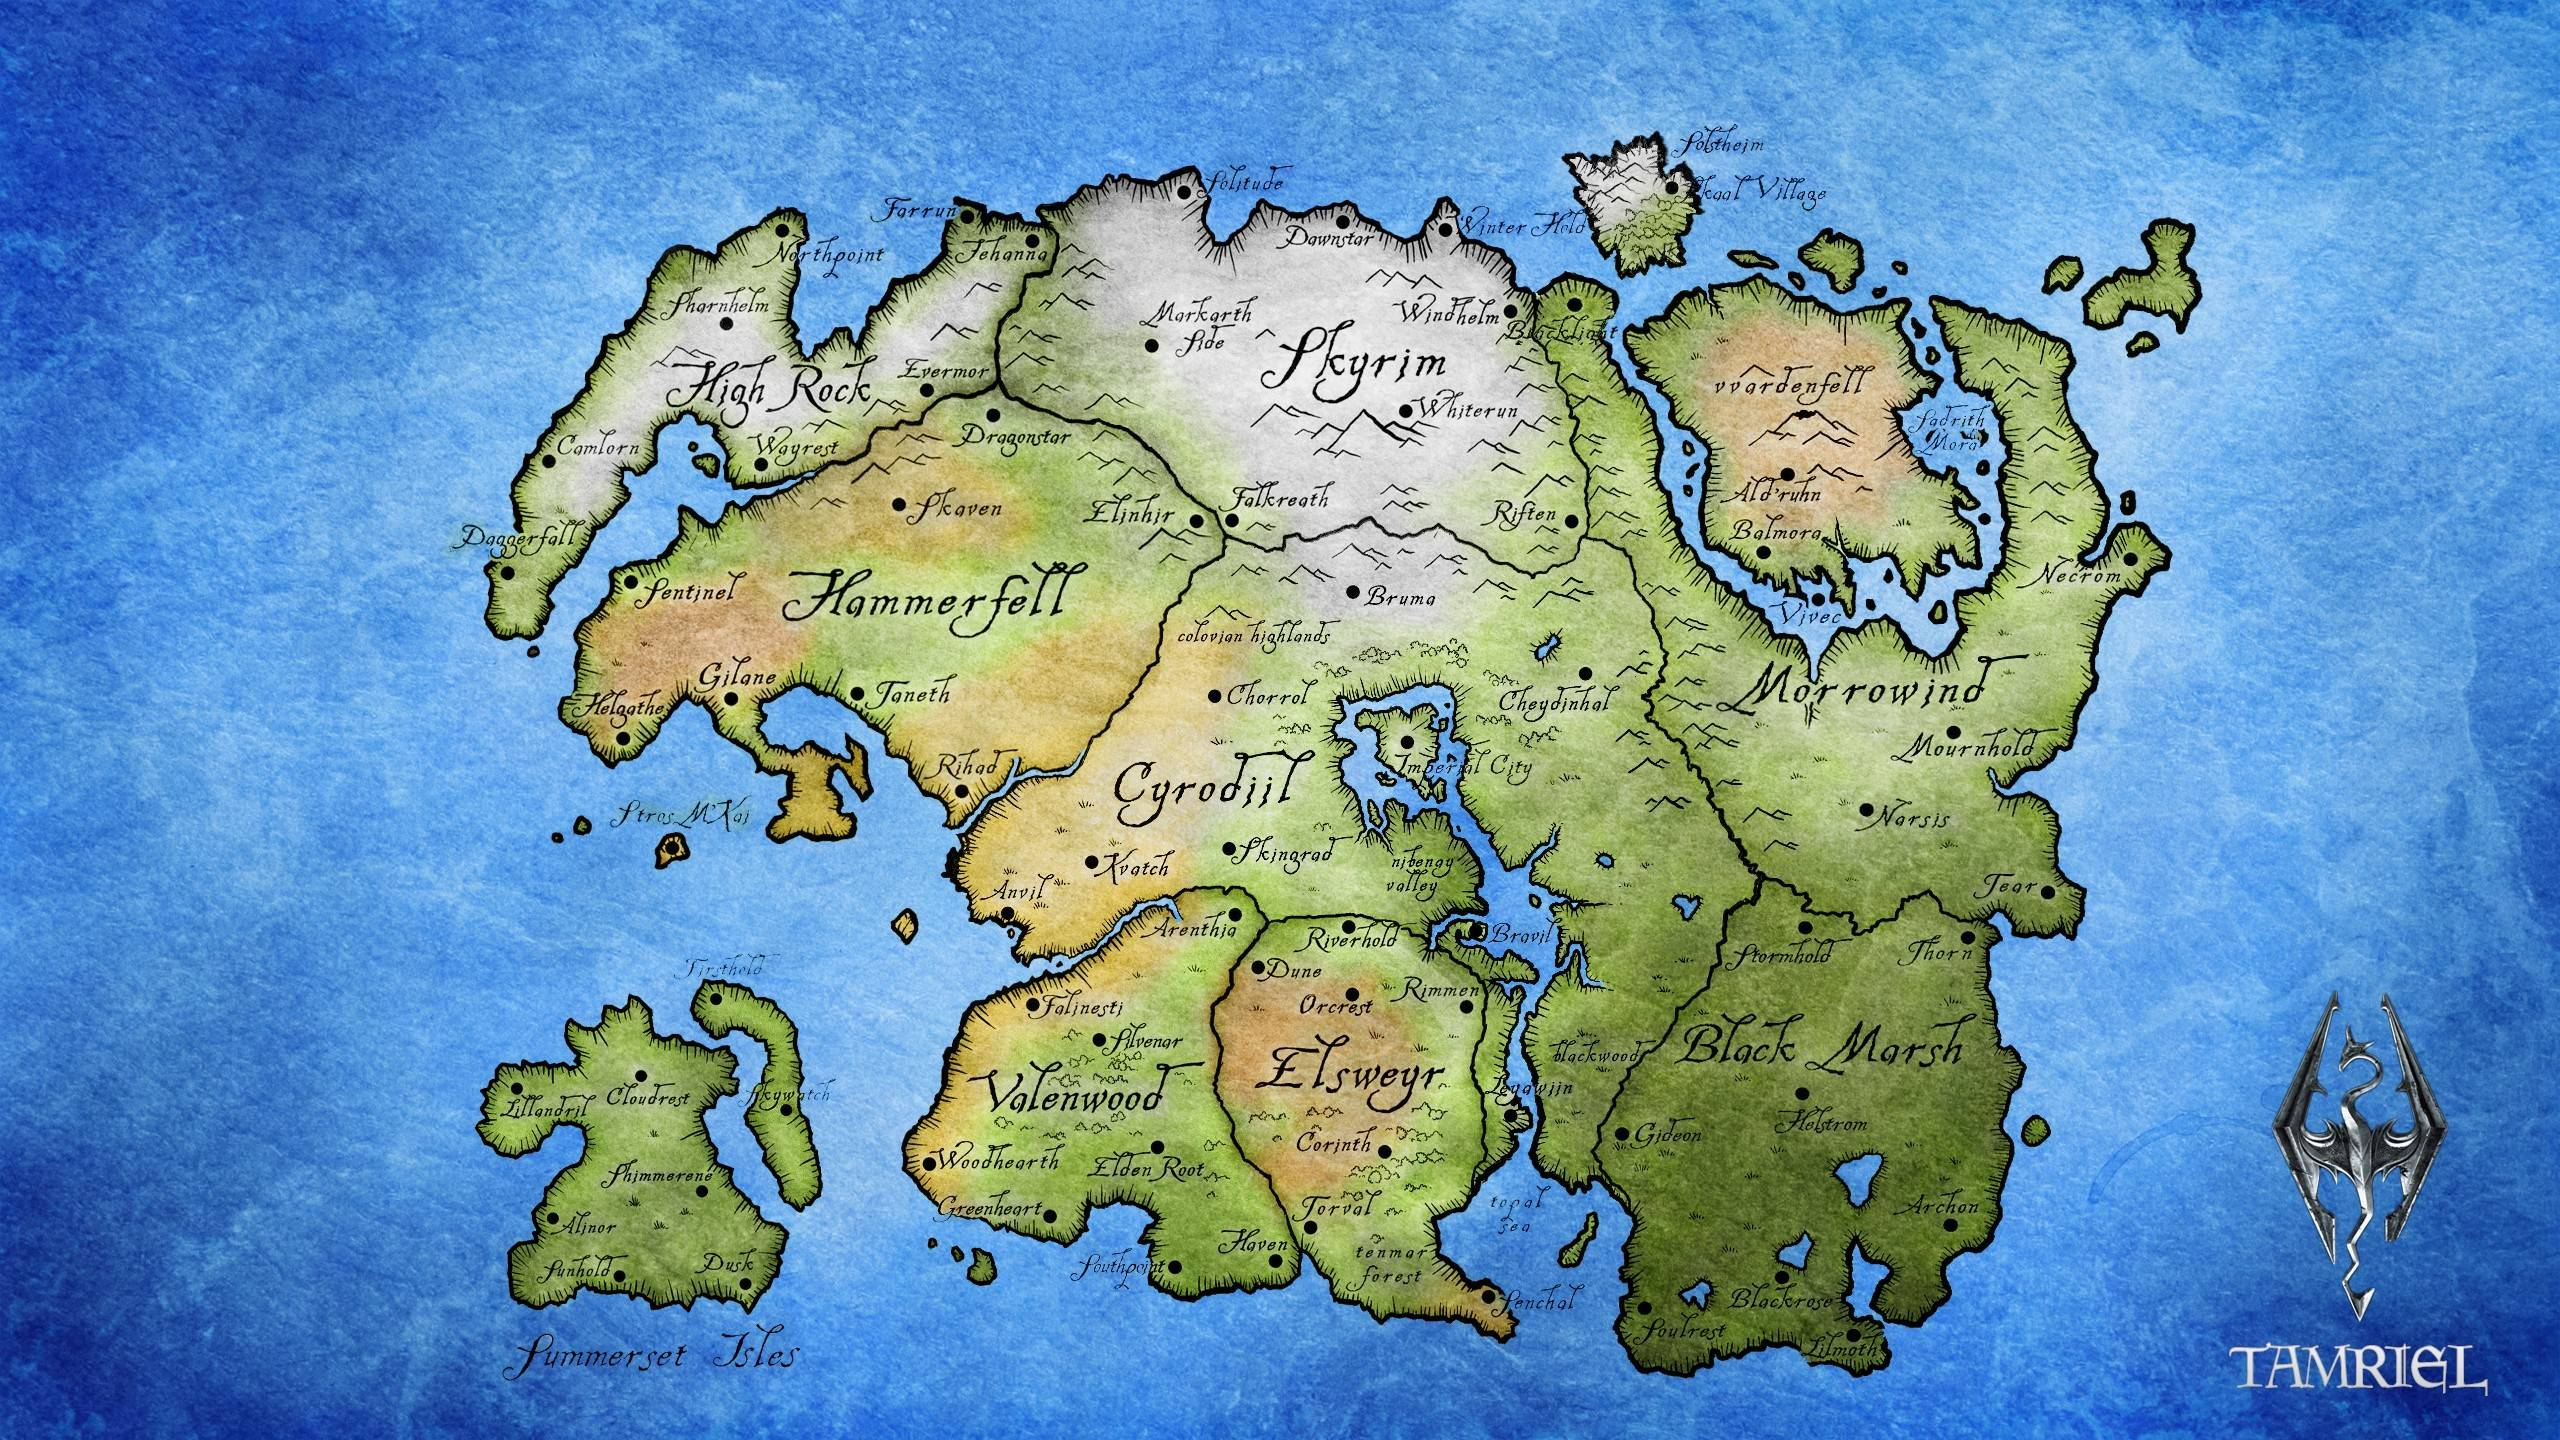 Skyrim map wallpapers wallpaper cave tamriel map the elder scrolls v skyrim wallpaper gumiabroncs Gallery